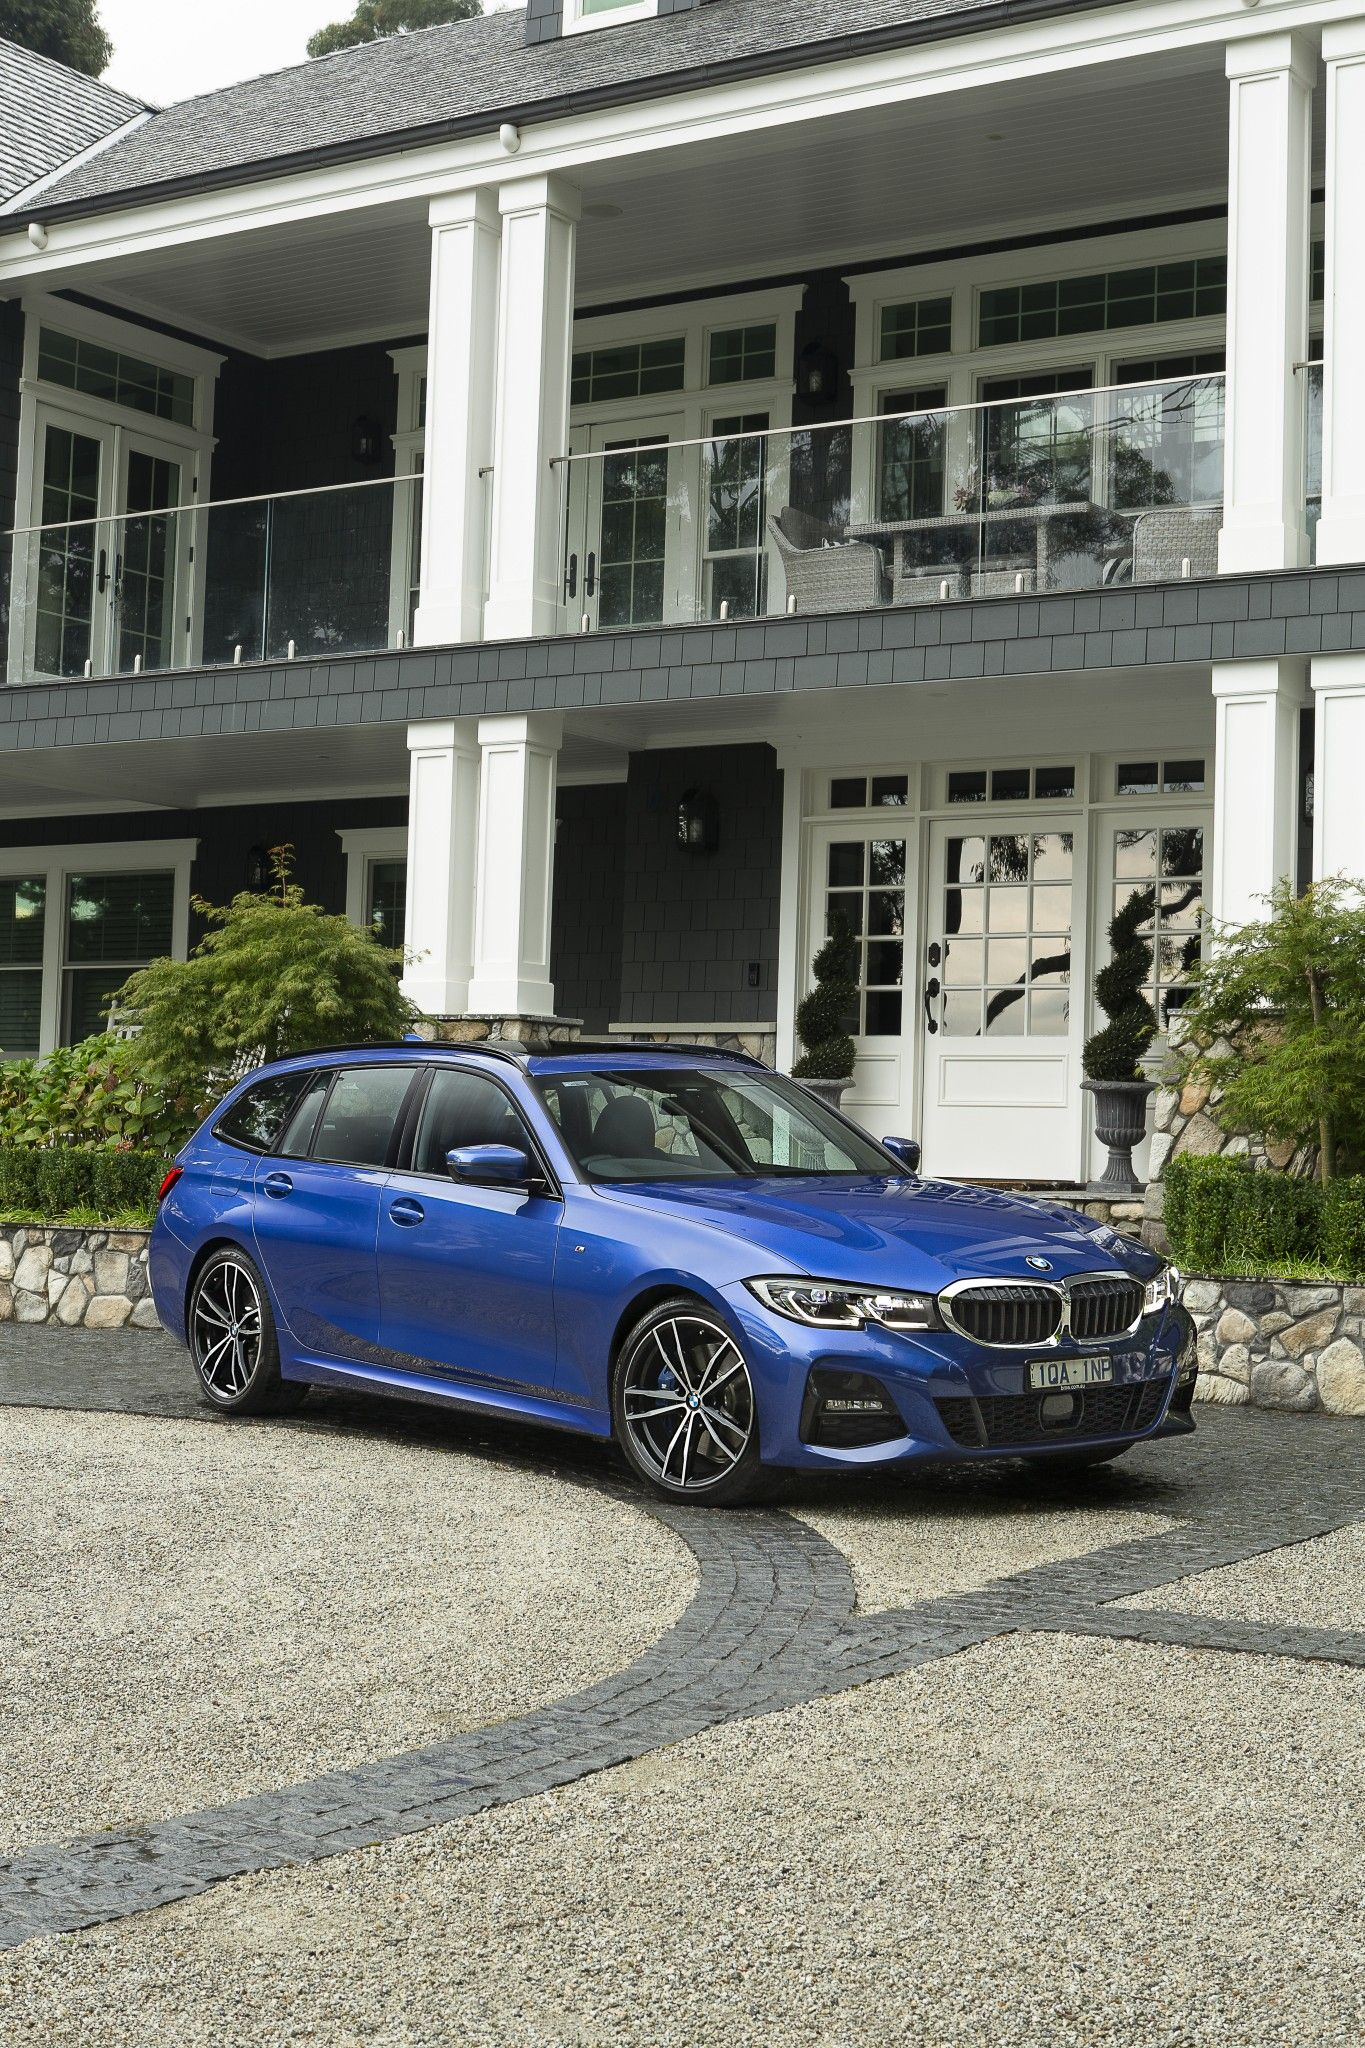 2020 Bmw 330i Touring M Sport G21 In 2020 Bmw Bmw 3 Series Touring